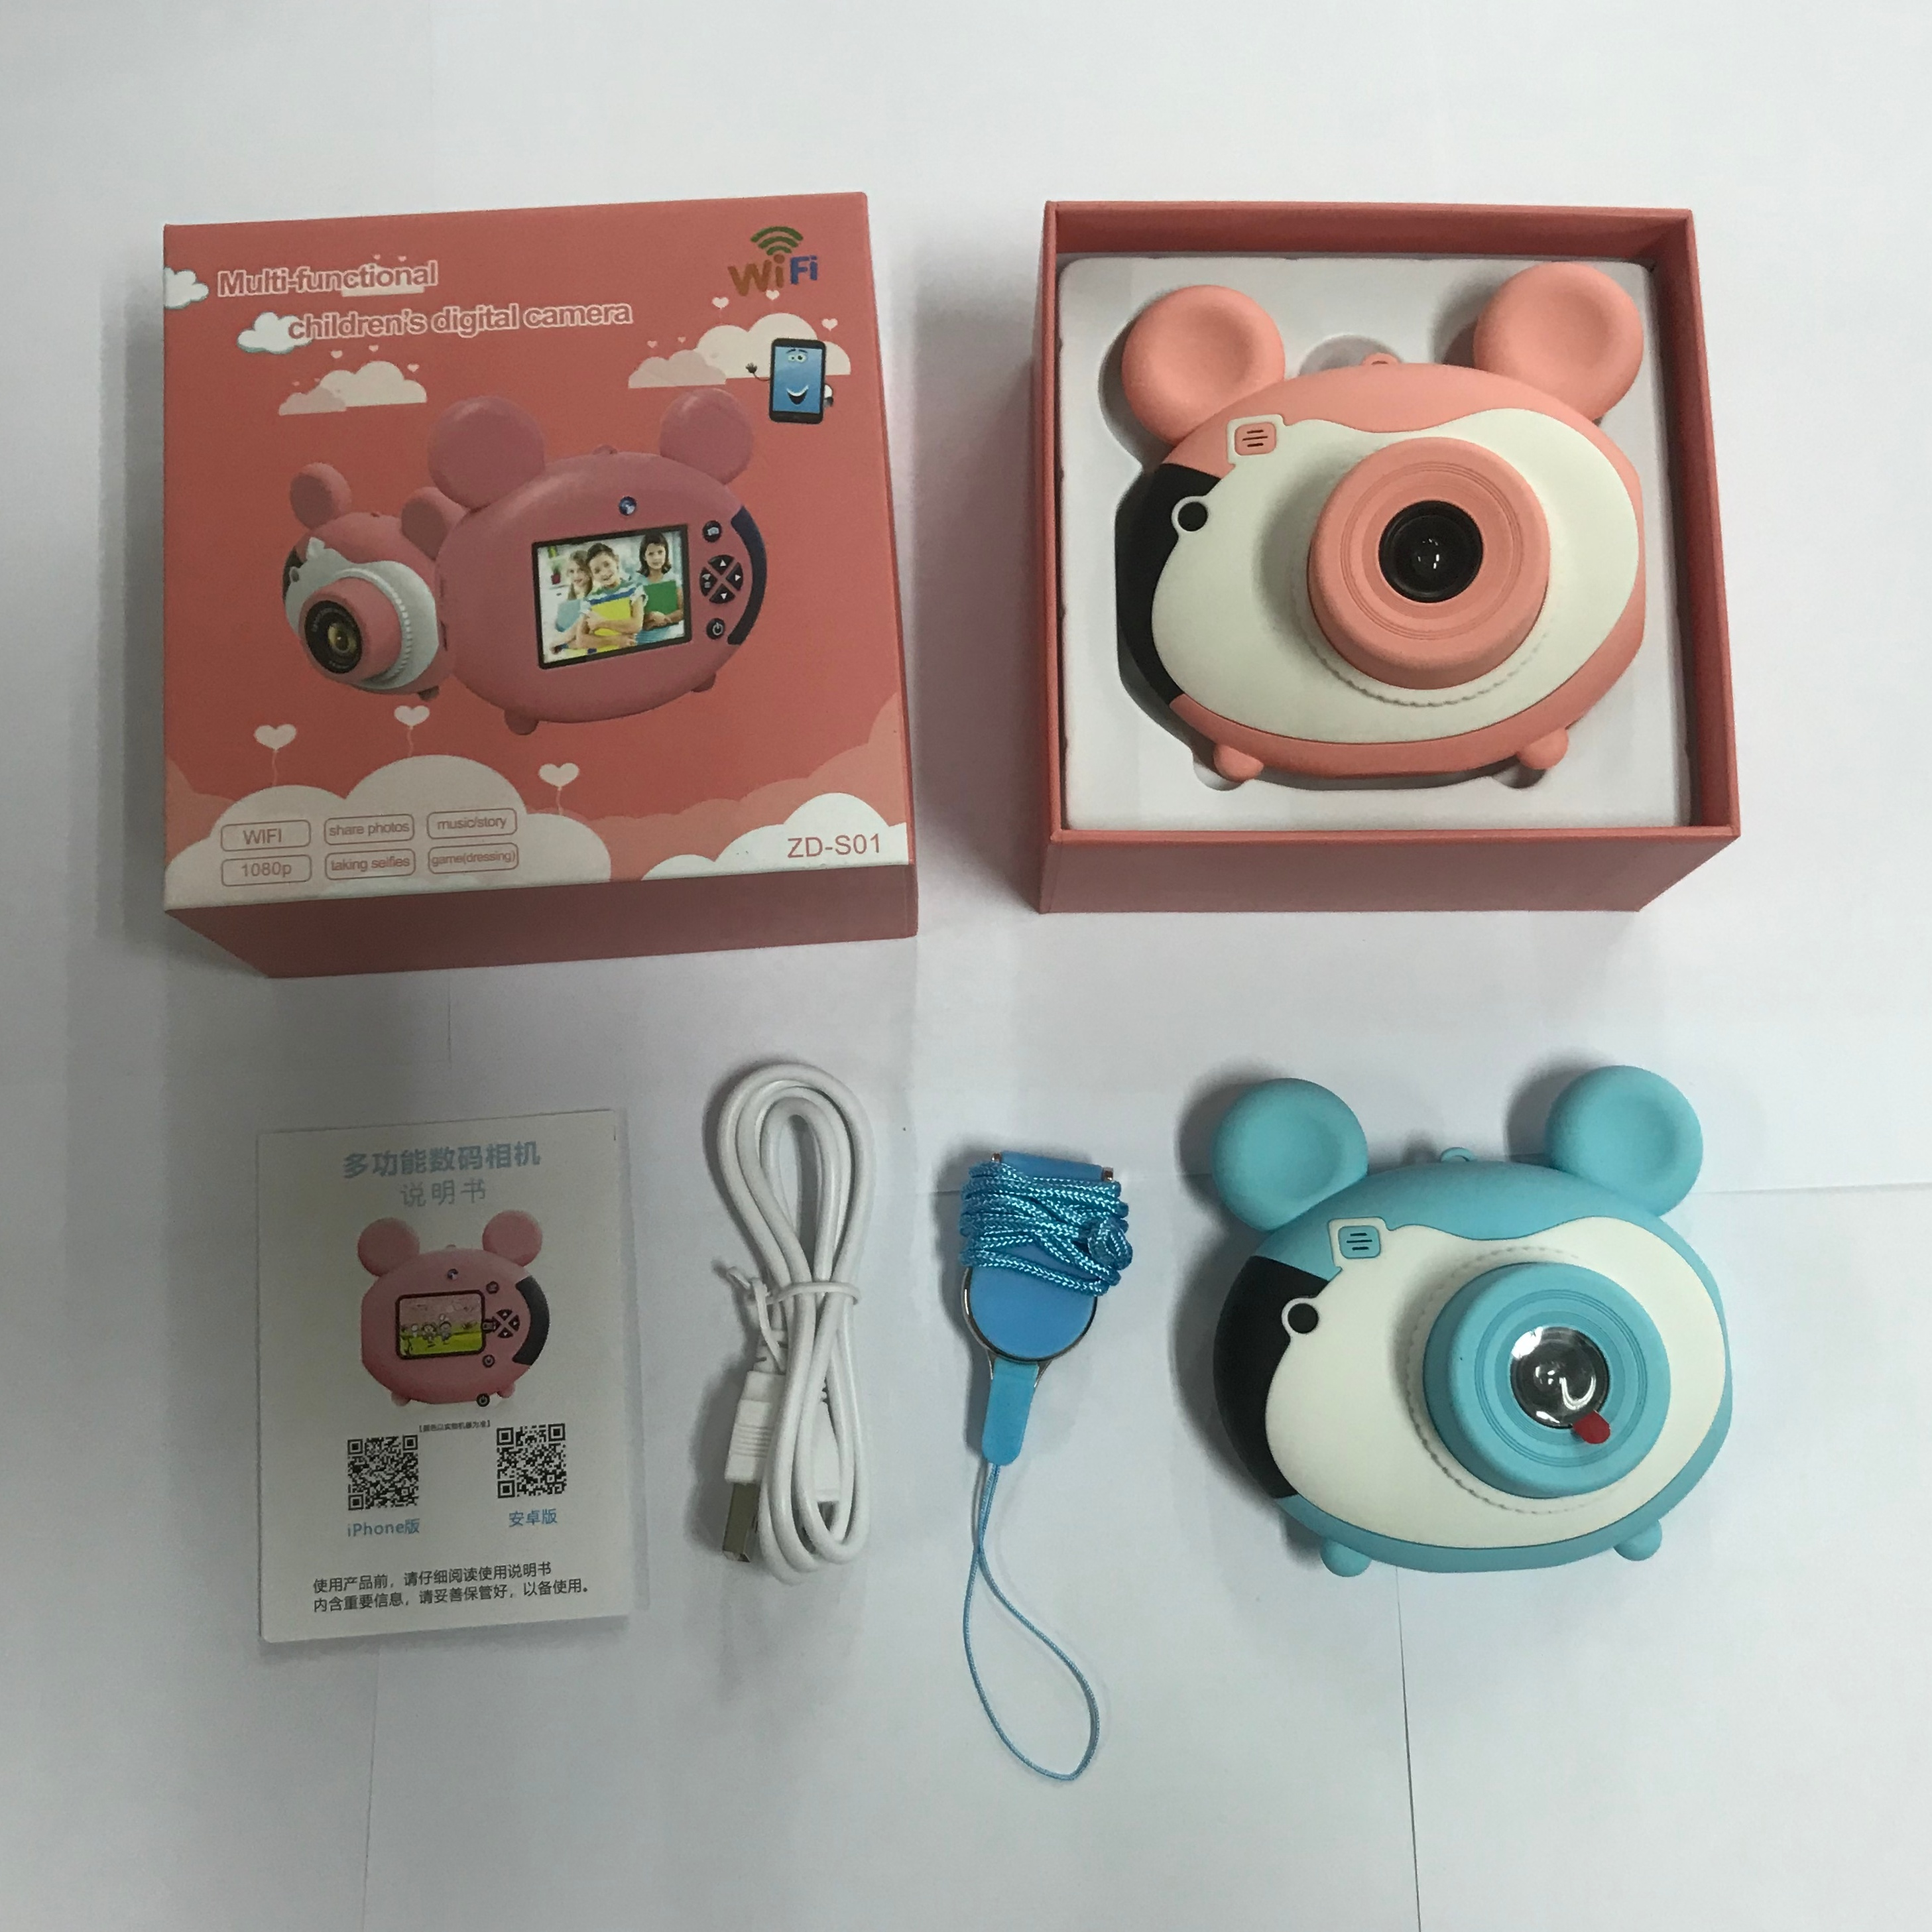 Regalo di natale per i bambini fotocamera digitale HD 16MP sensore di Immagine 8.8-36.8mm lente da 2.0 pollici LCD Display digitale video macchina fotografica